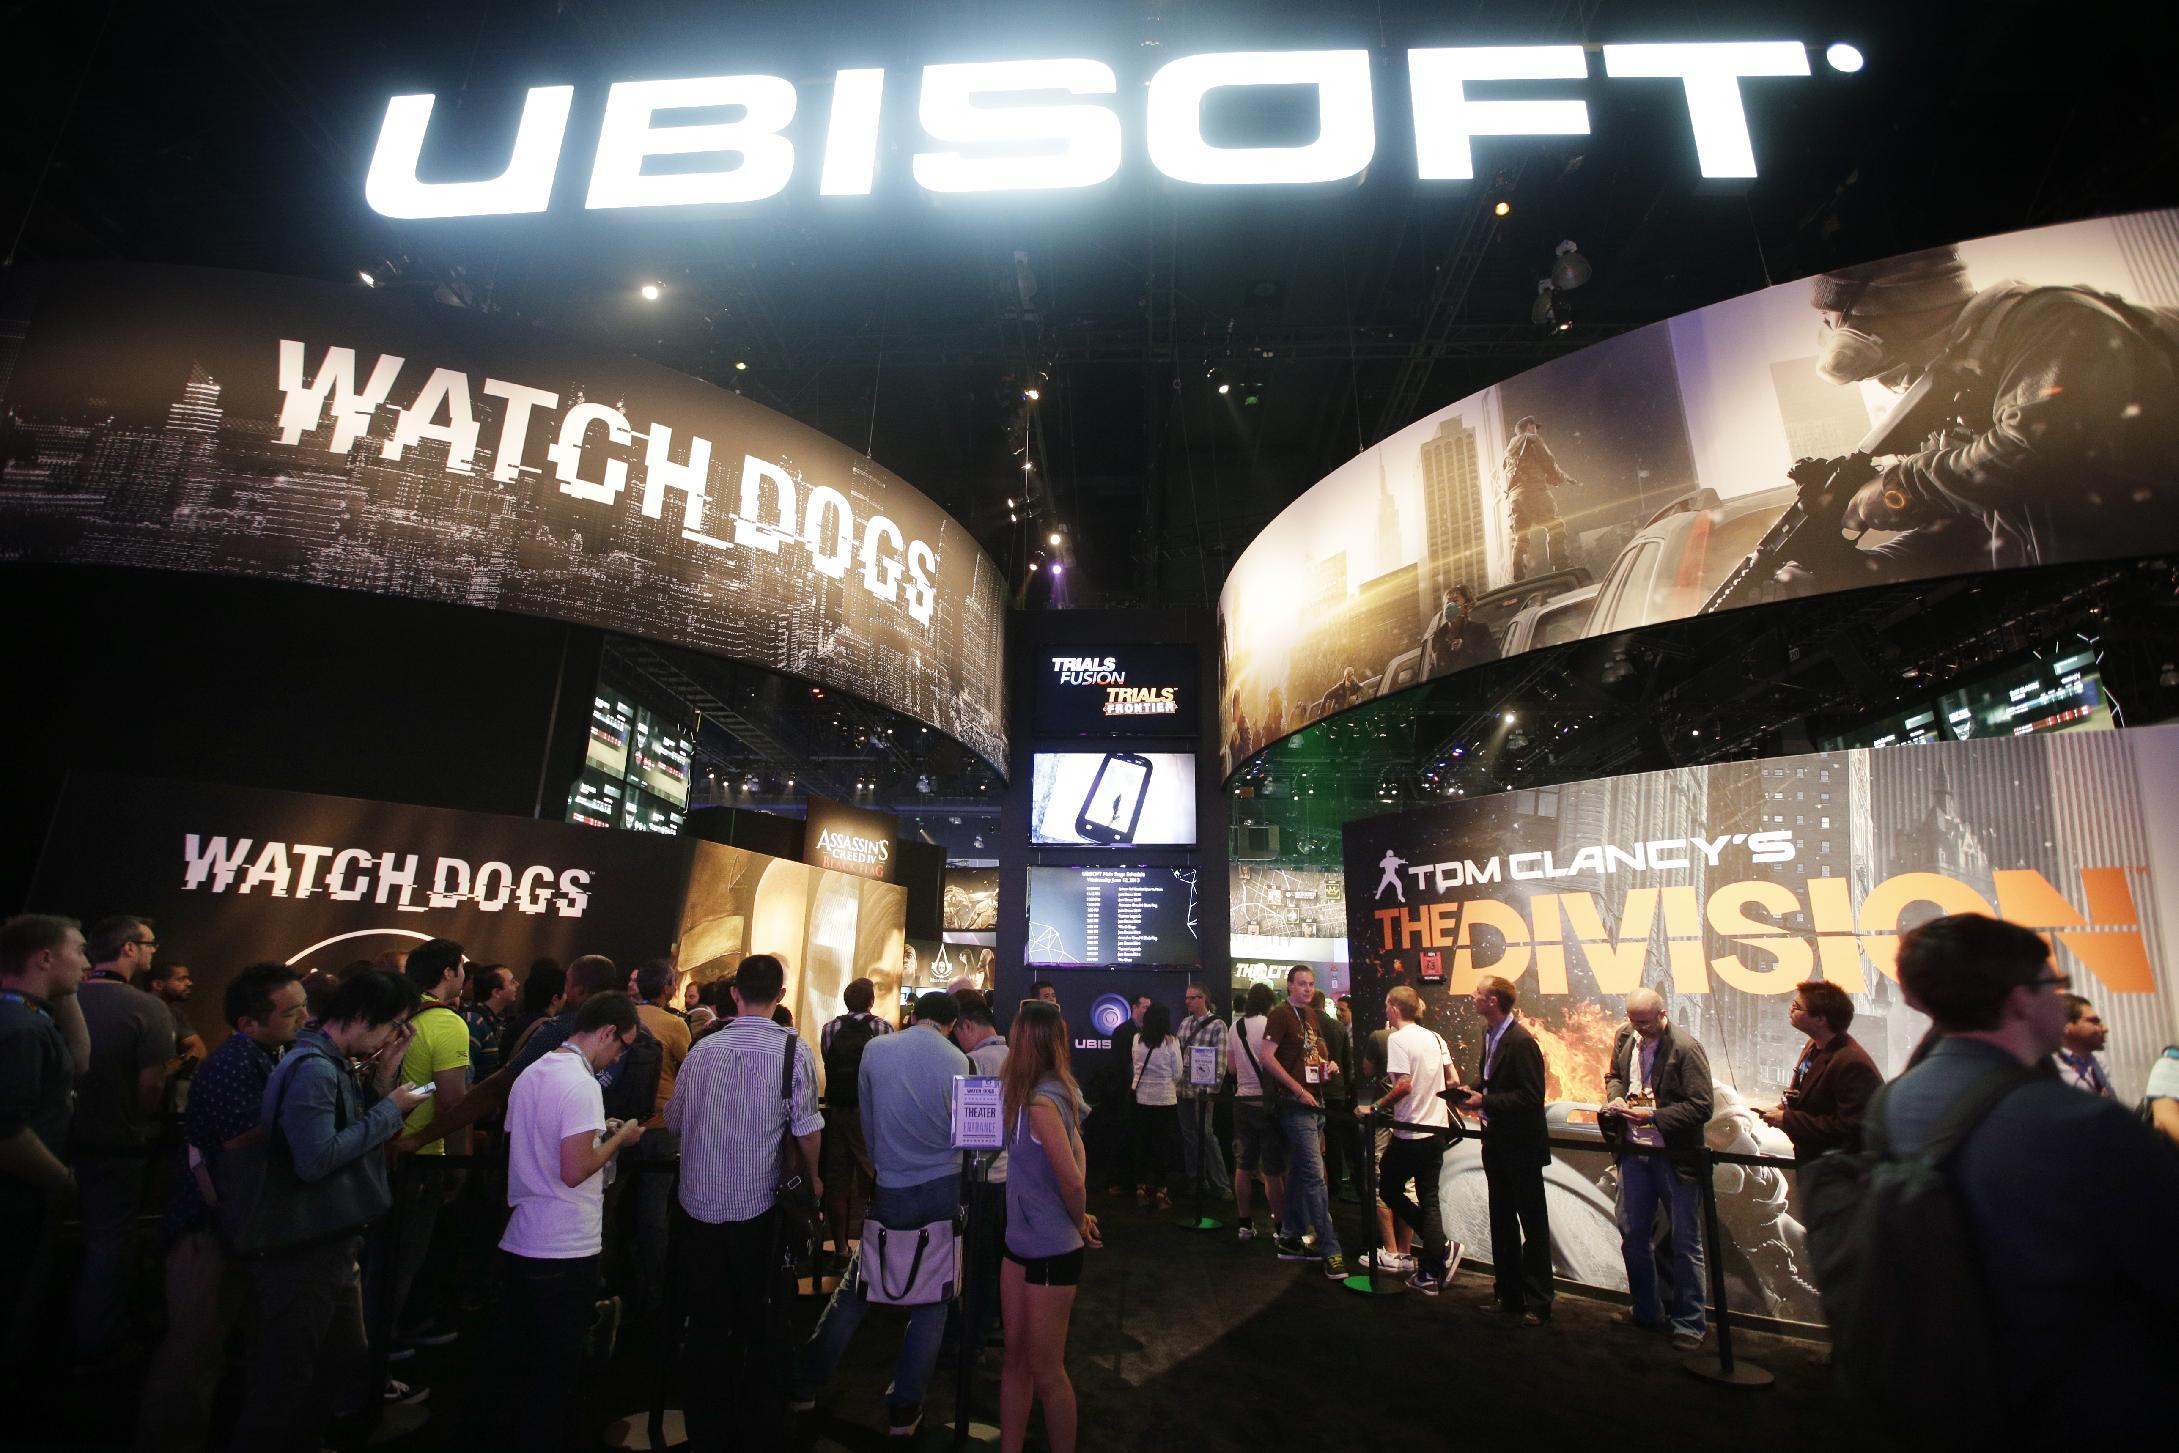 """This June 12, 2013 photo shows attendees waiting in line for the presentations on the video games, """"Watch Dogs"""" and """"Tom Clancy's The Division"""" at the Ubisoft booth during the Electronic Entertainment Expo in Los Angeles. Ubisoft's """"Watch Dogs"""" is about a super-hacker who can eavesdrop on phone conversations. It is among several games being hyped at the Electronic Entertainment Expo featuring ripped-from-the-headlines realness. (AP Photo/Jae C. Hong)"""